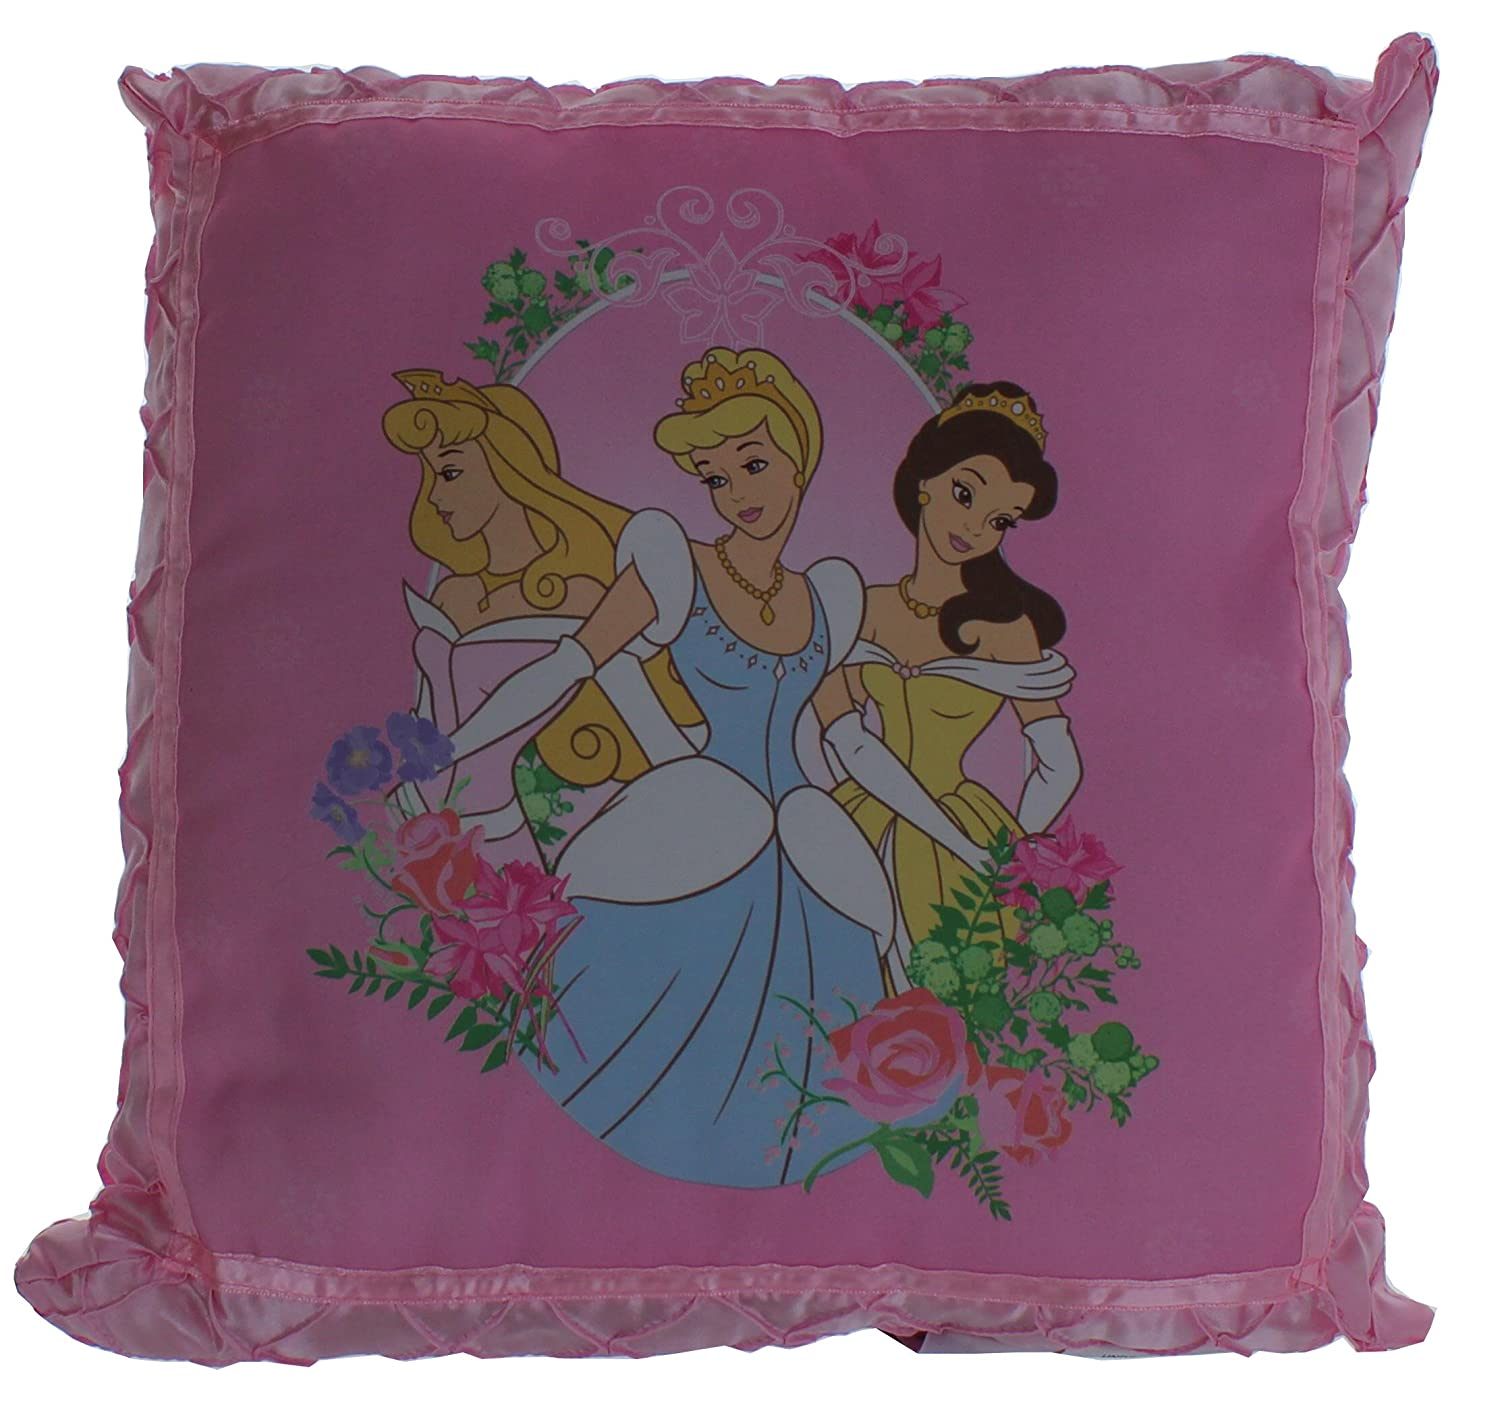 Disney Princess Elegance Decorative Pillow